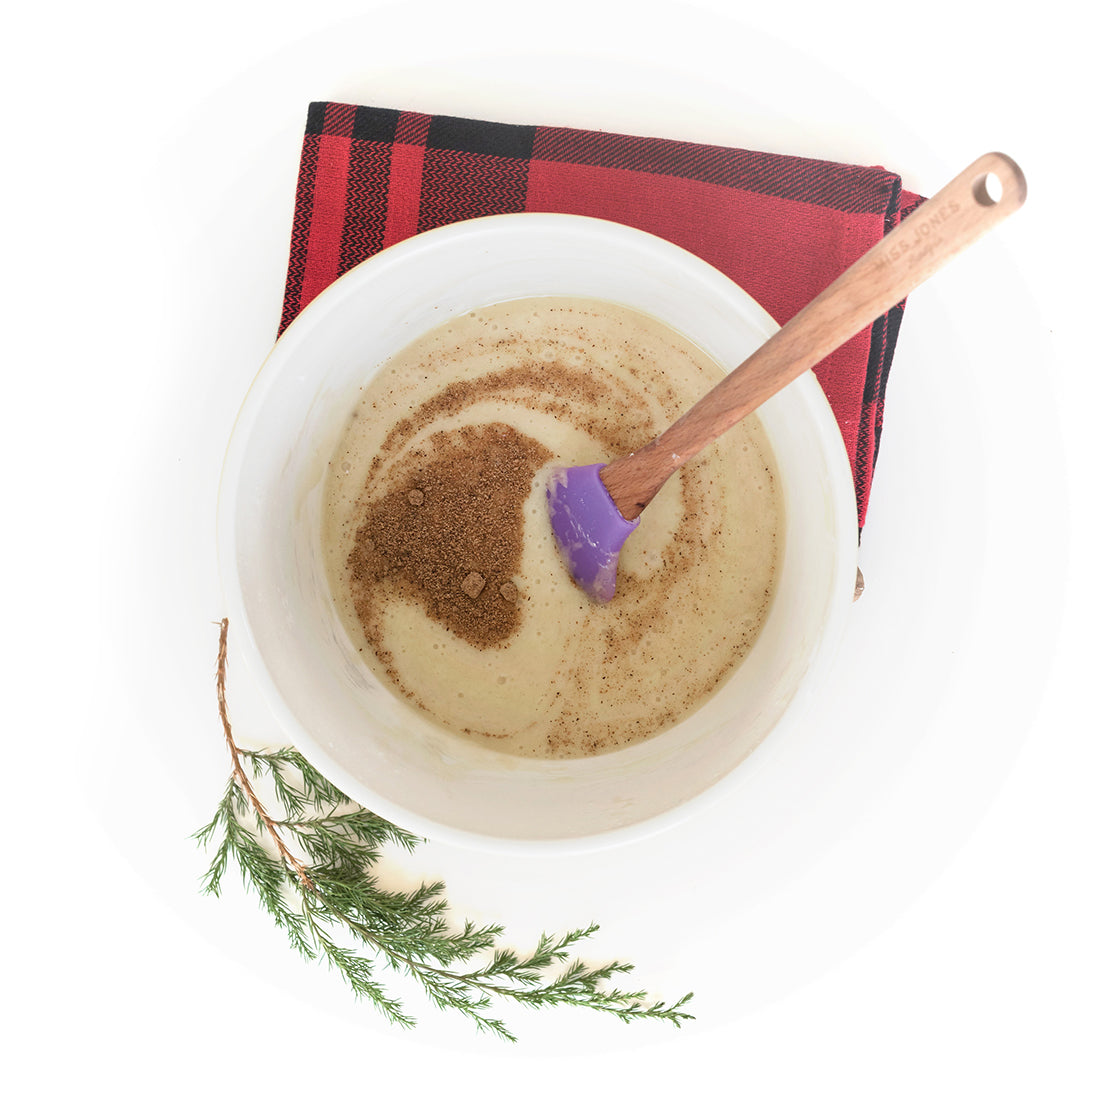 Image from above of Miss Jones Baking Co Easy Holiday Eggnog Mini Donuts batter in a mixing bowl with a purple spatula next to a red towel and a sprig of a conifer branch